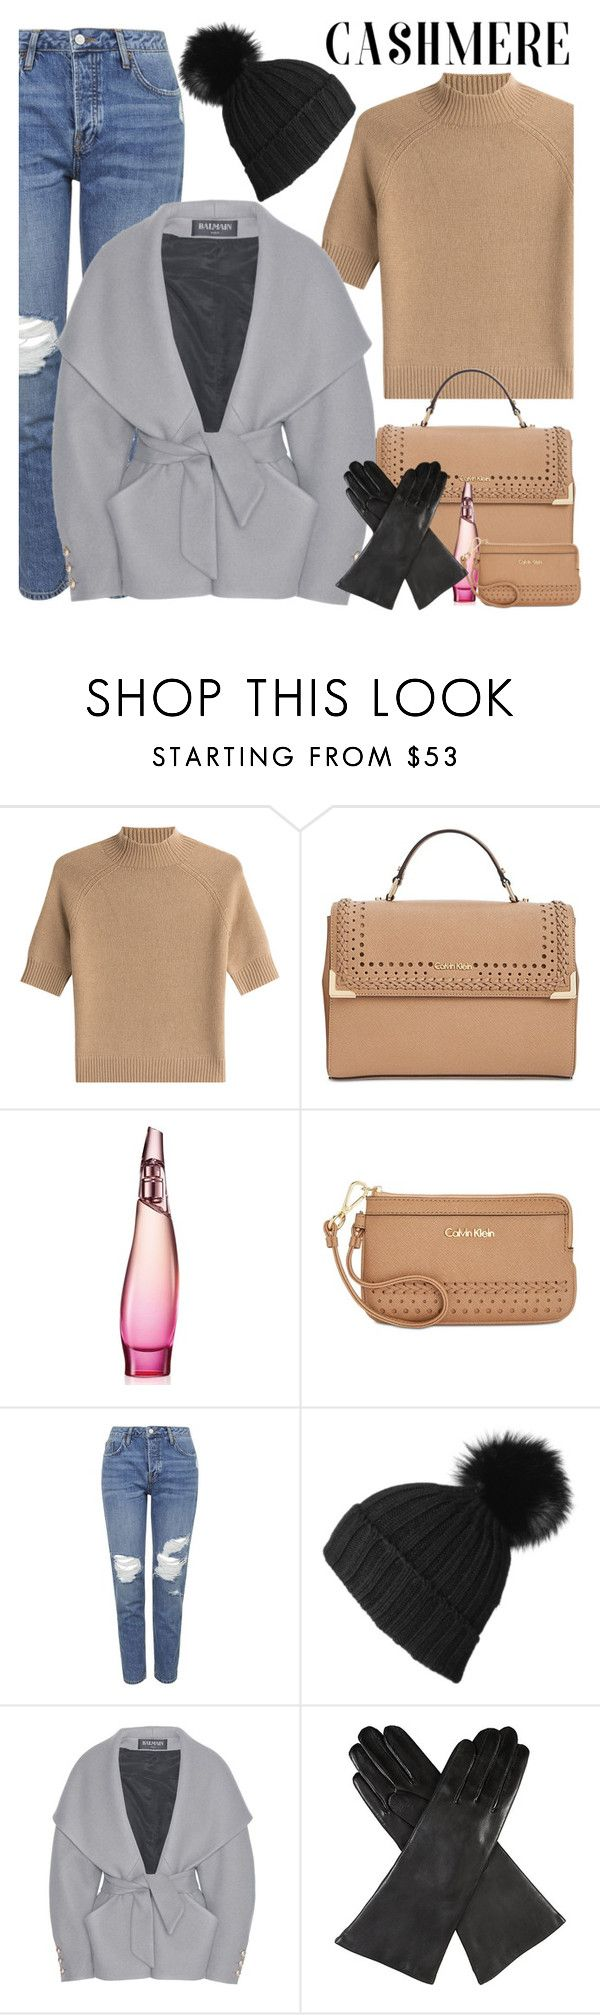 """Cozy Cashmere Sweaters"" by sabinakopic ❤ liked on Polyvore featuring Theory, Calvin Klein, Donna Karan, Topshop, Black, Balmain, Dents and cashmere"